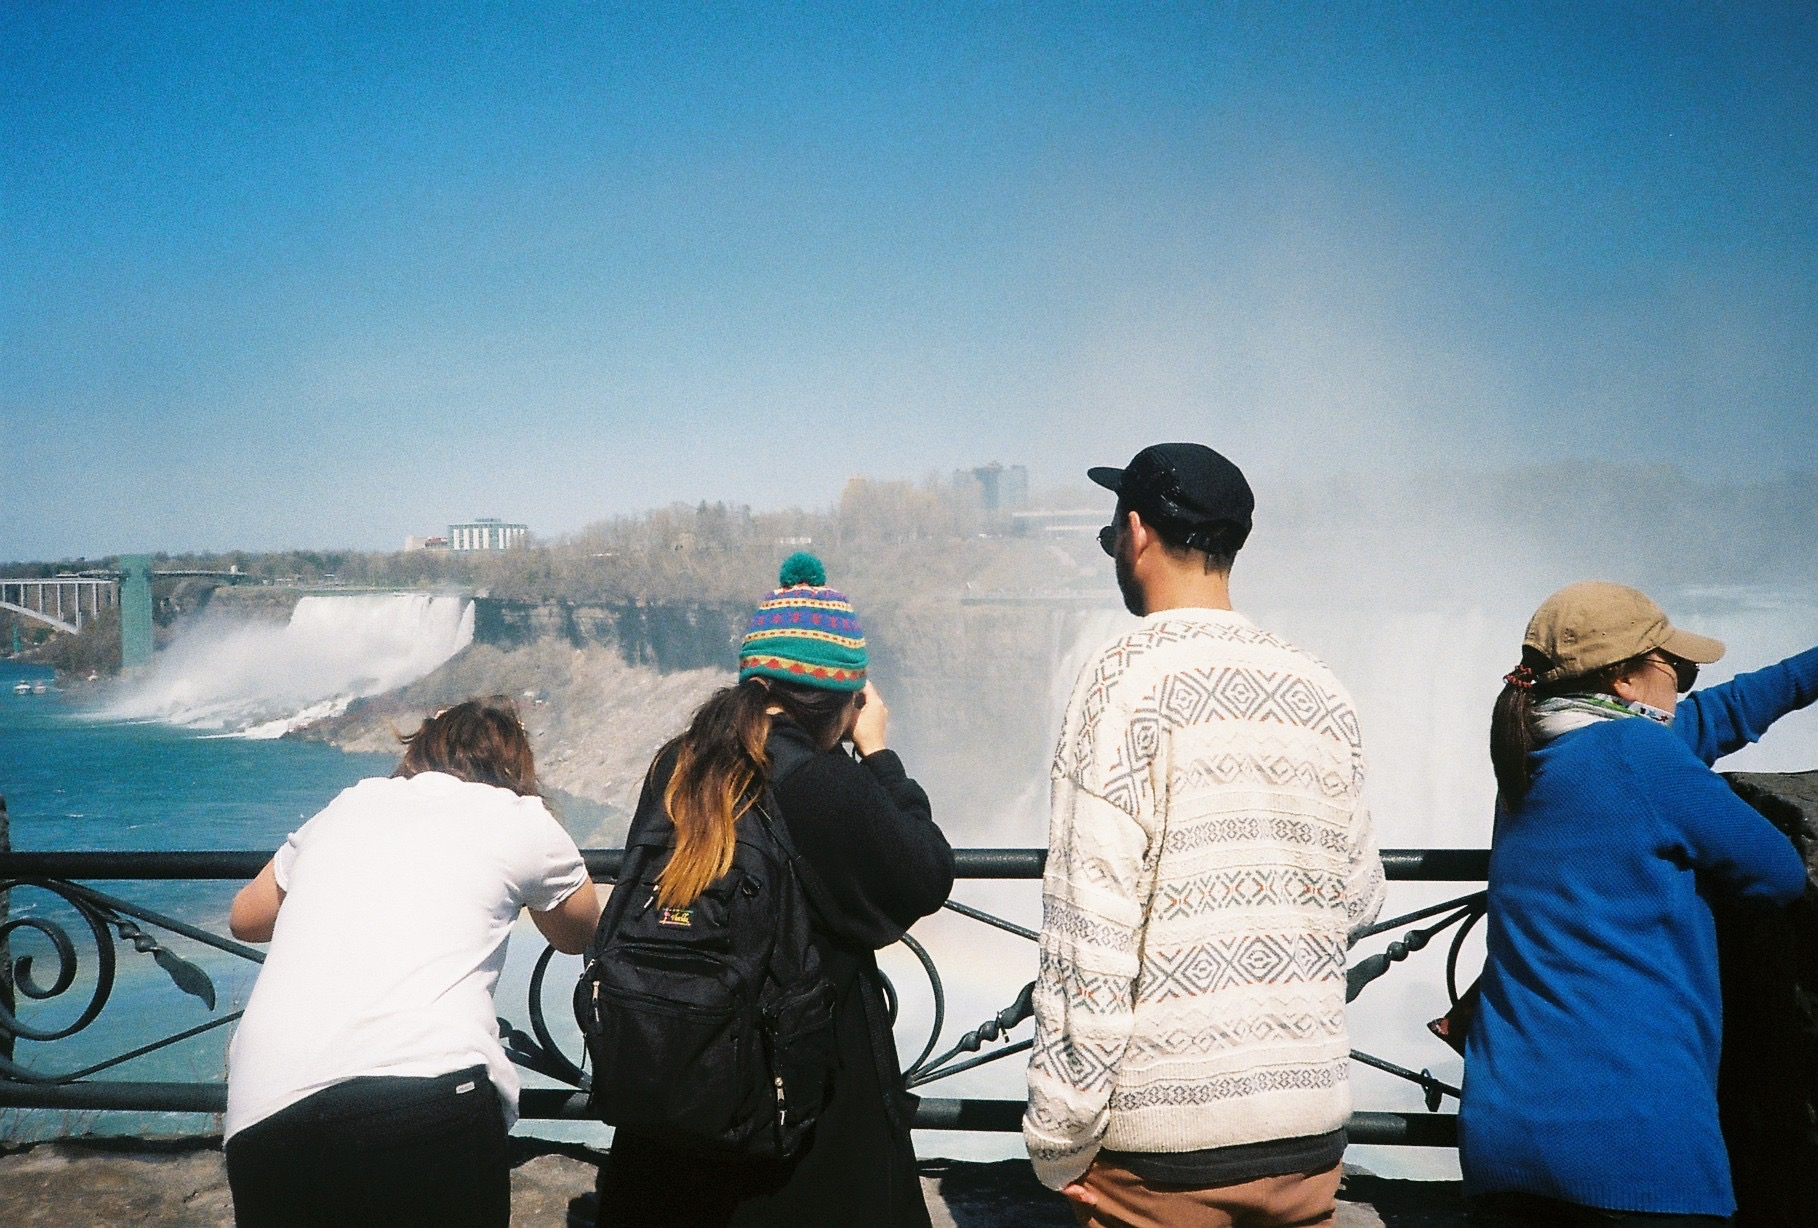 Niagara Falls. Not sure who that is on the right.